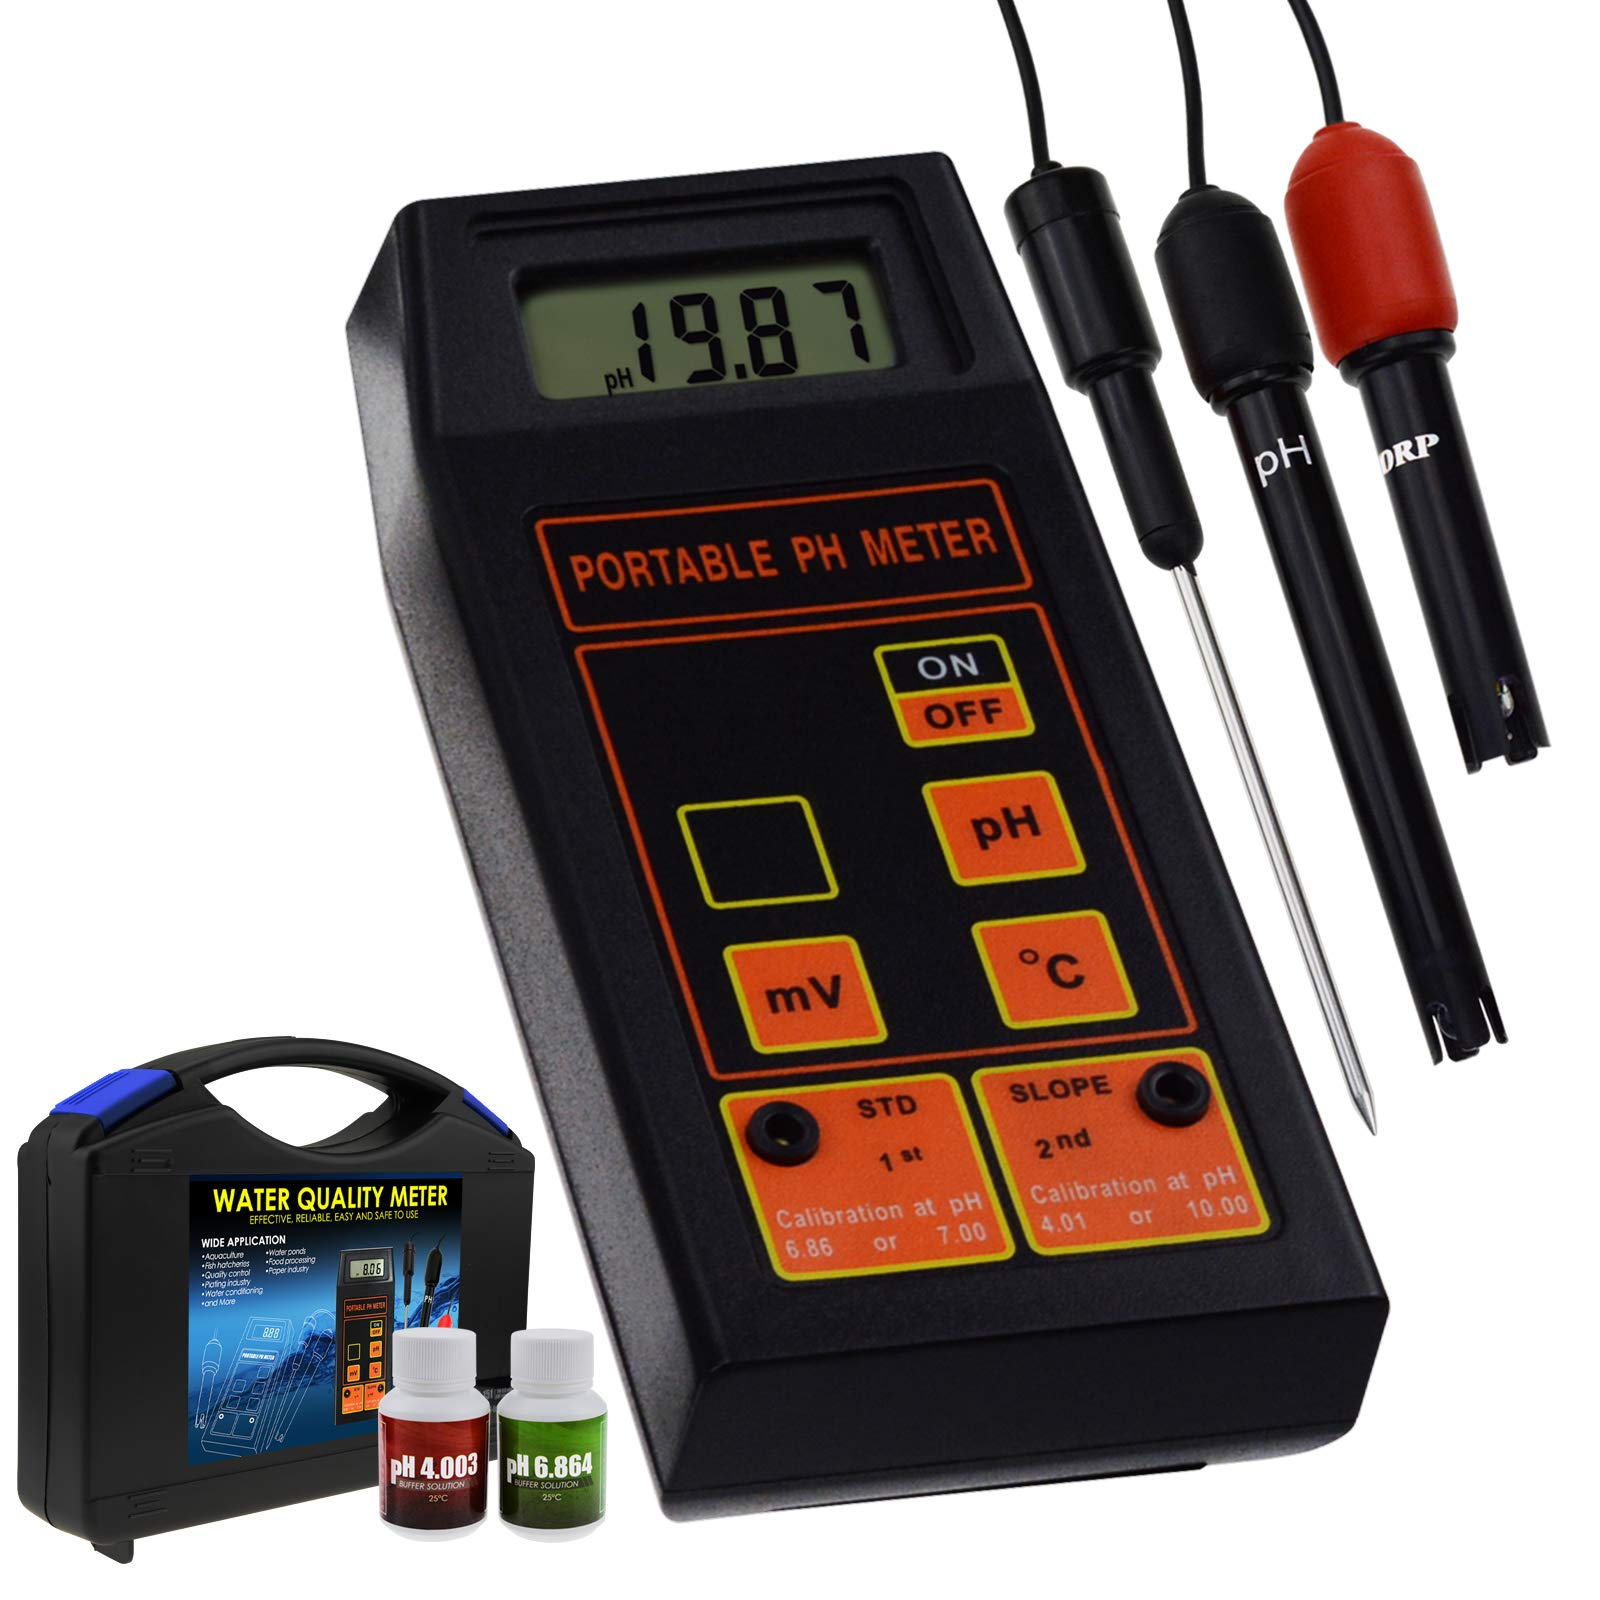 Digital 3in1 pH/ORP / Temp Meter Water Quality Tester with ATC Replaceable Detachable Electrode Probe for Aquarium, Laboratory Test, Hydroponics Water,Pool Testing Tool